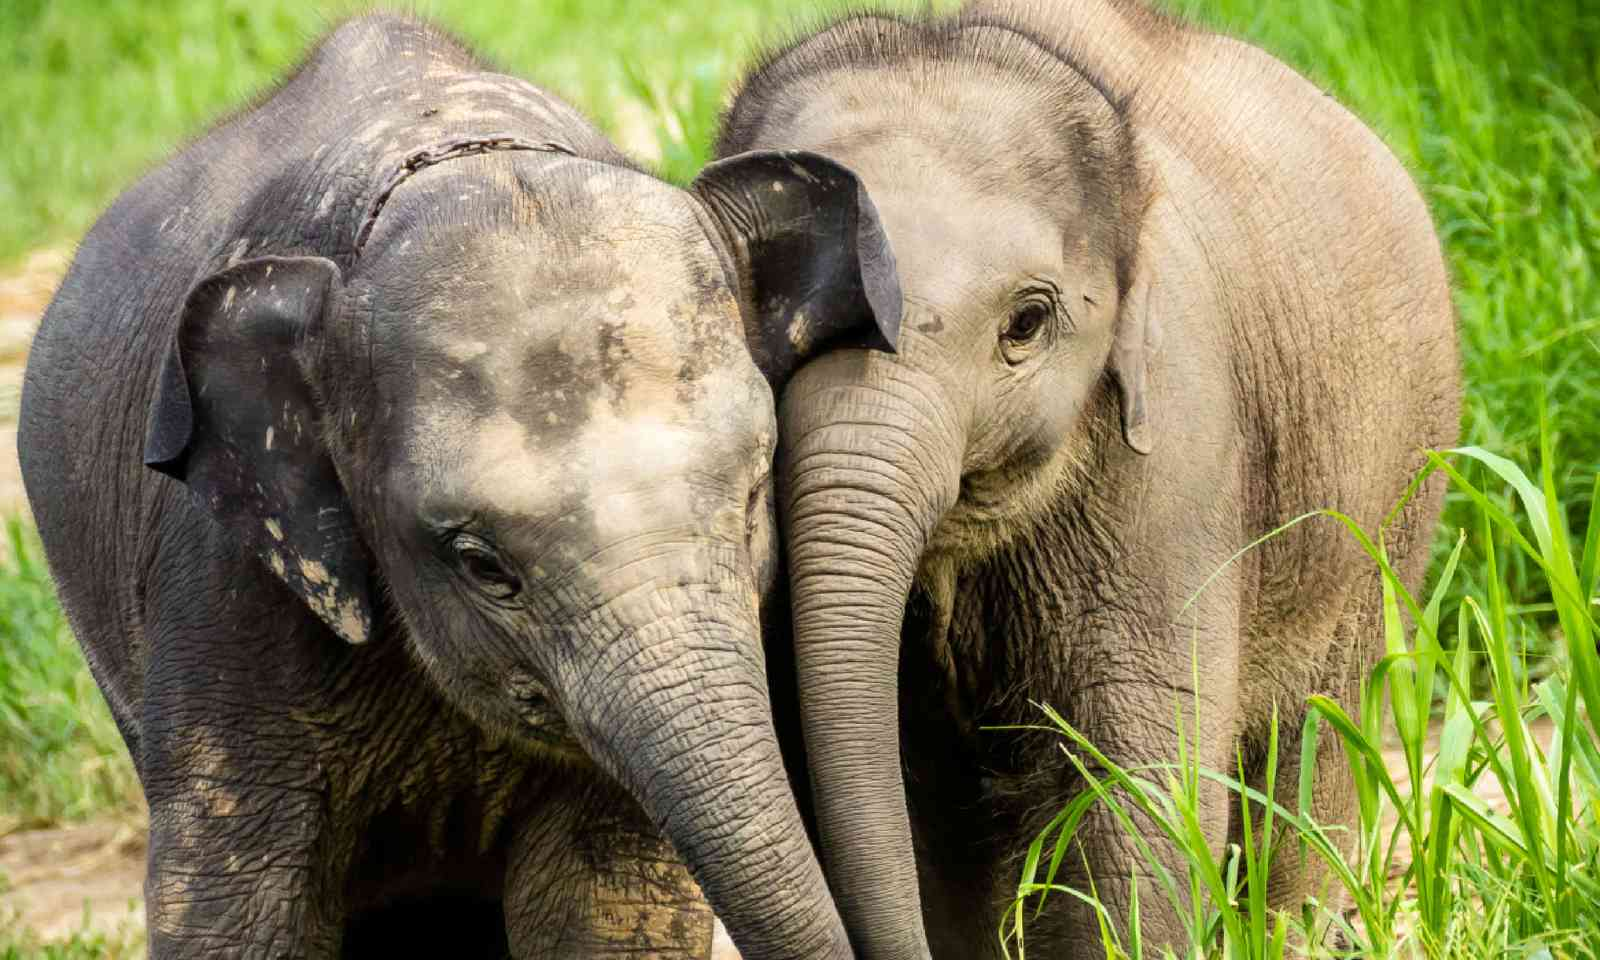 Two baby elephants, Thailand (Shutterstock)